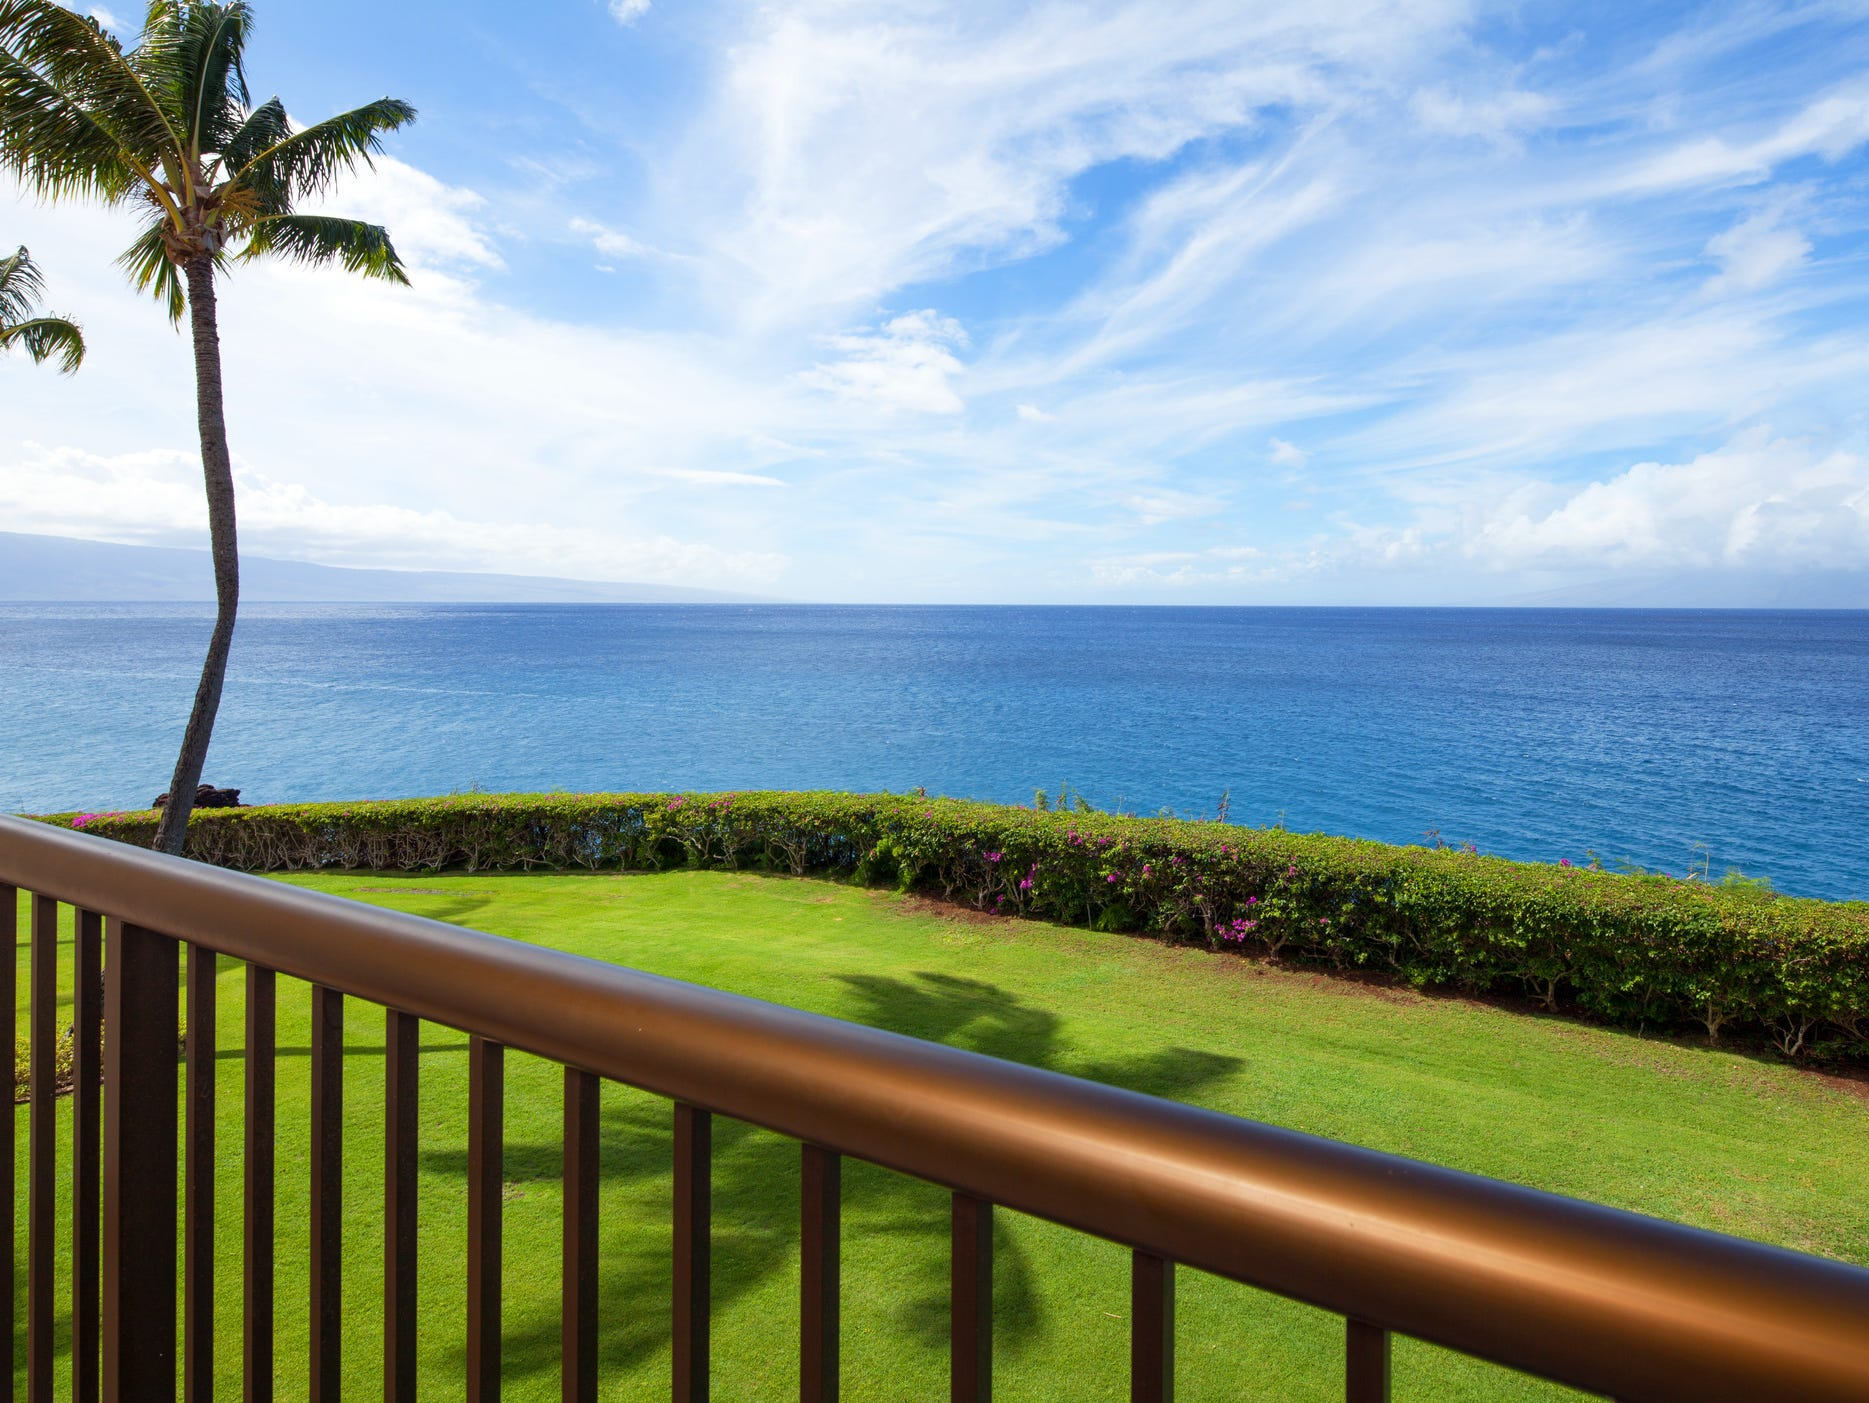 Eighty-three percent of the Sheraton Maui Resort's newly-renovated 508 rooms and suites feature breathtaking views of the Pacific, and sister islands Lanai and Molokai.